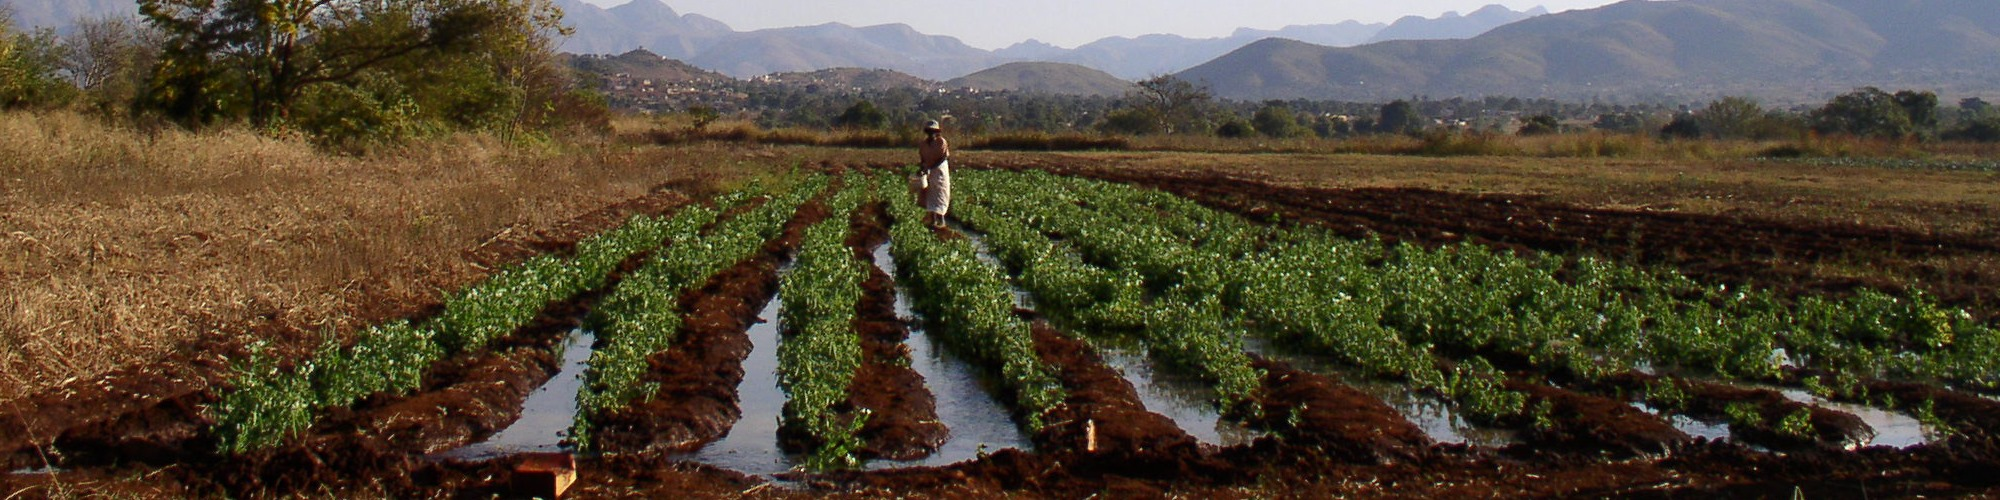 Irrigated Field, Limpopo Basin, South Africa